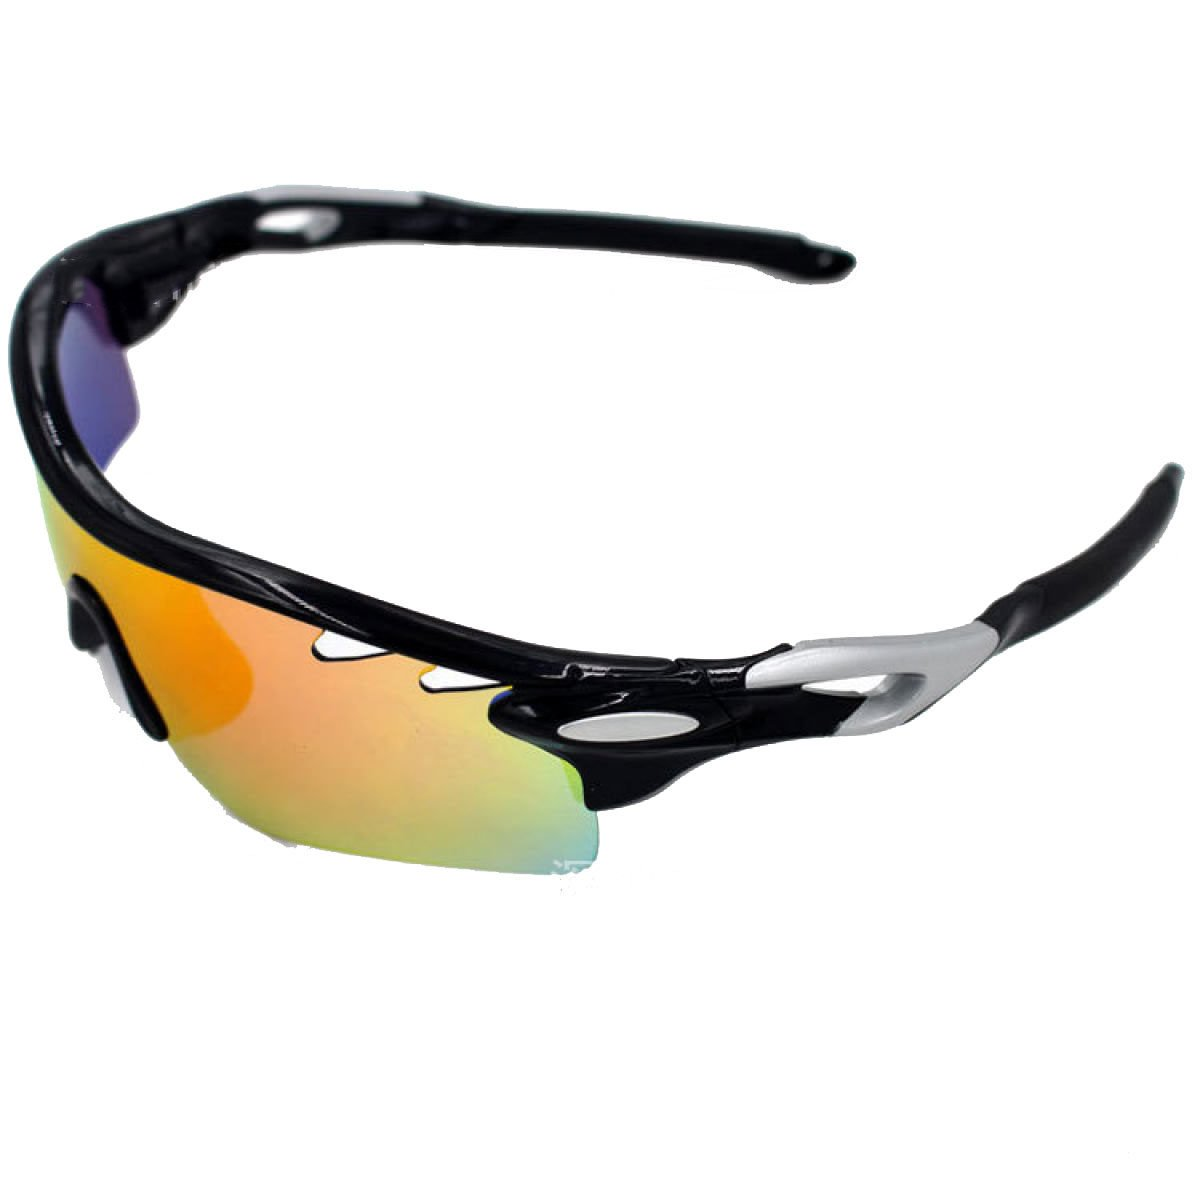 TZQ Riding Glasses Wind Mirrors Sports De Plein Air Lunettes De Soleil Polarisantes Lunettes De Ski Anti-buée,L